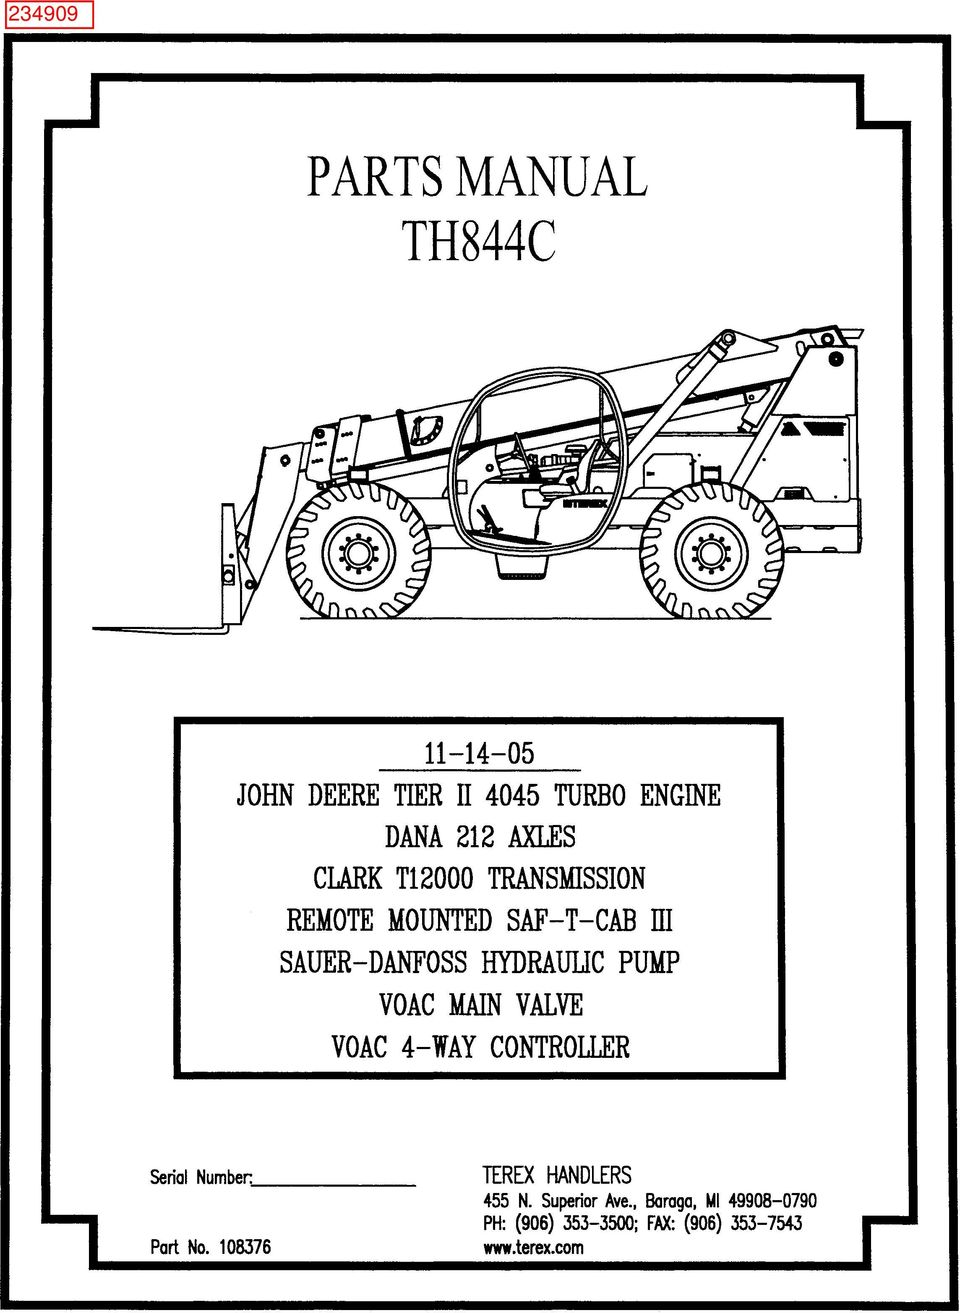 Parts Manual Th844c Terex Handlers 455 N Superior Ave Baraga Mi Ignition Switch Wiring Diagram Transcription